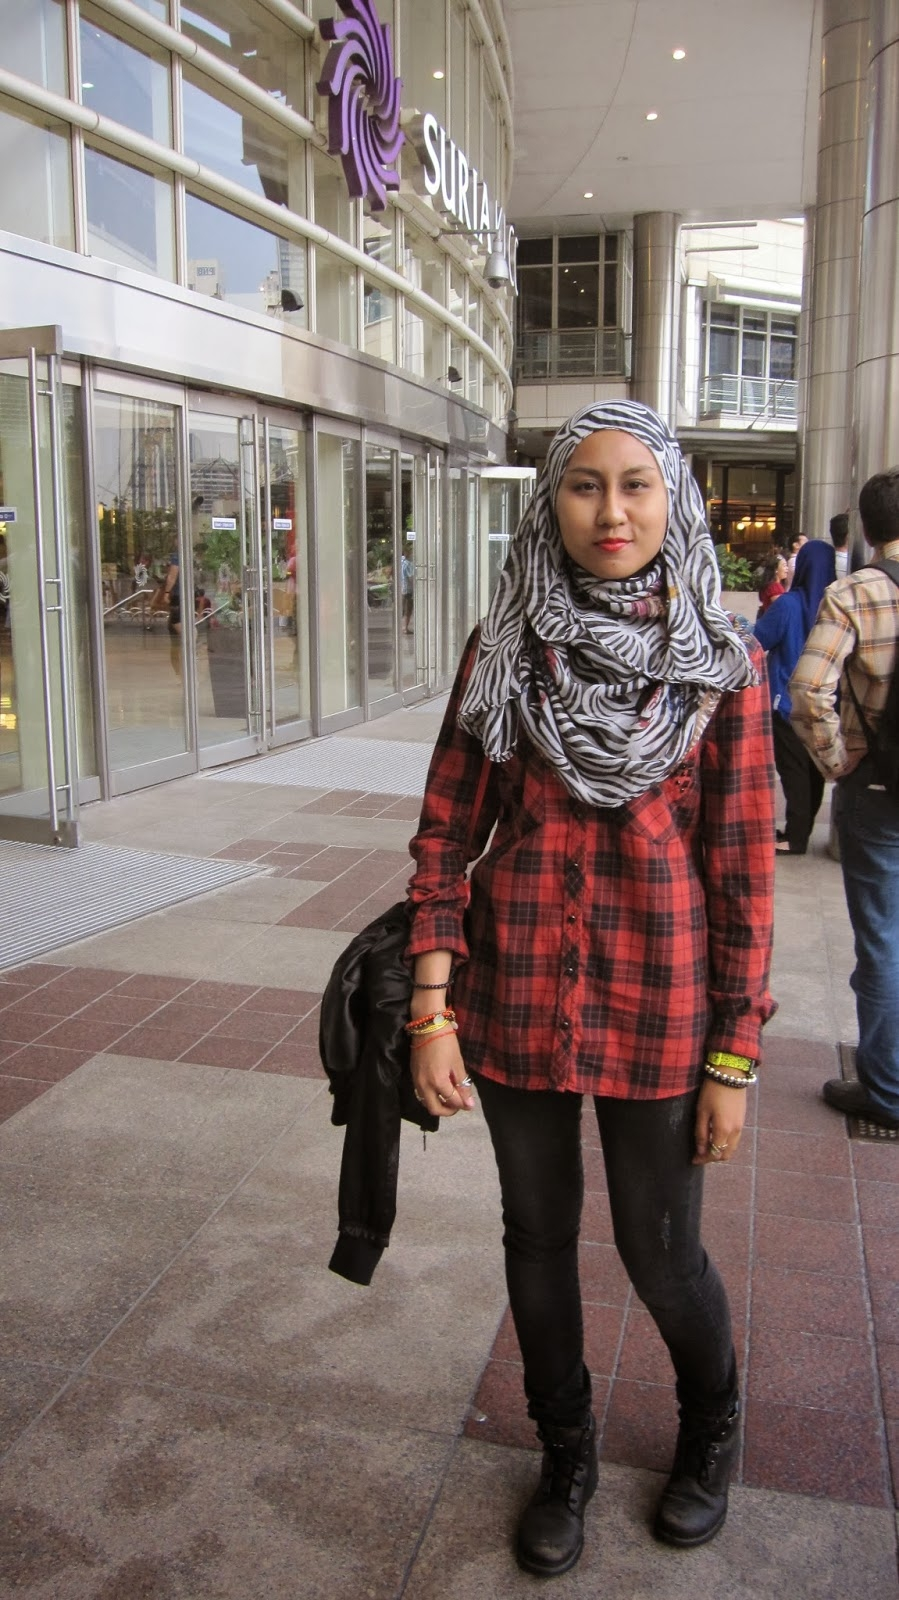 messy casual grunge and simple life klcc affordorable